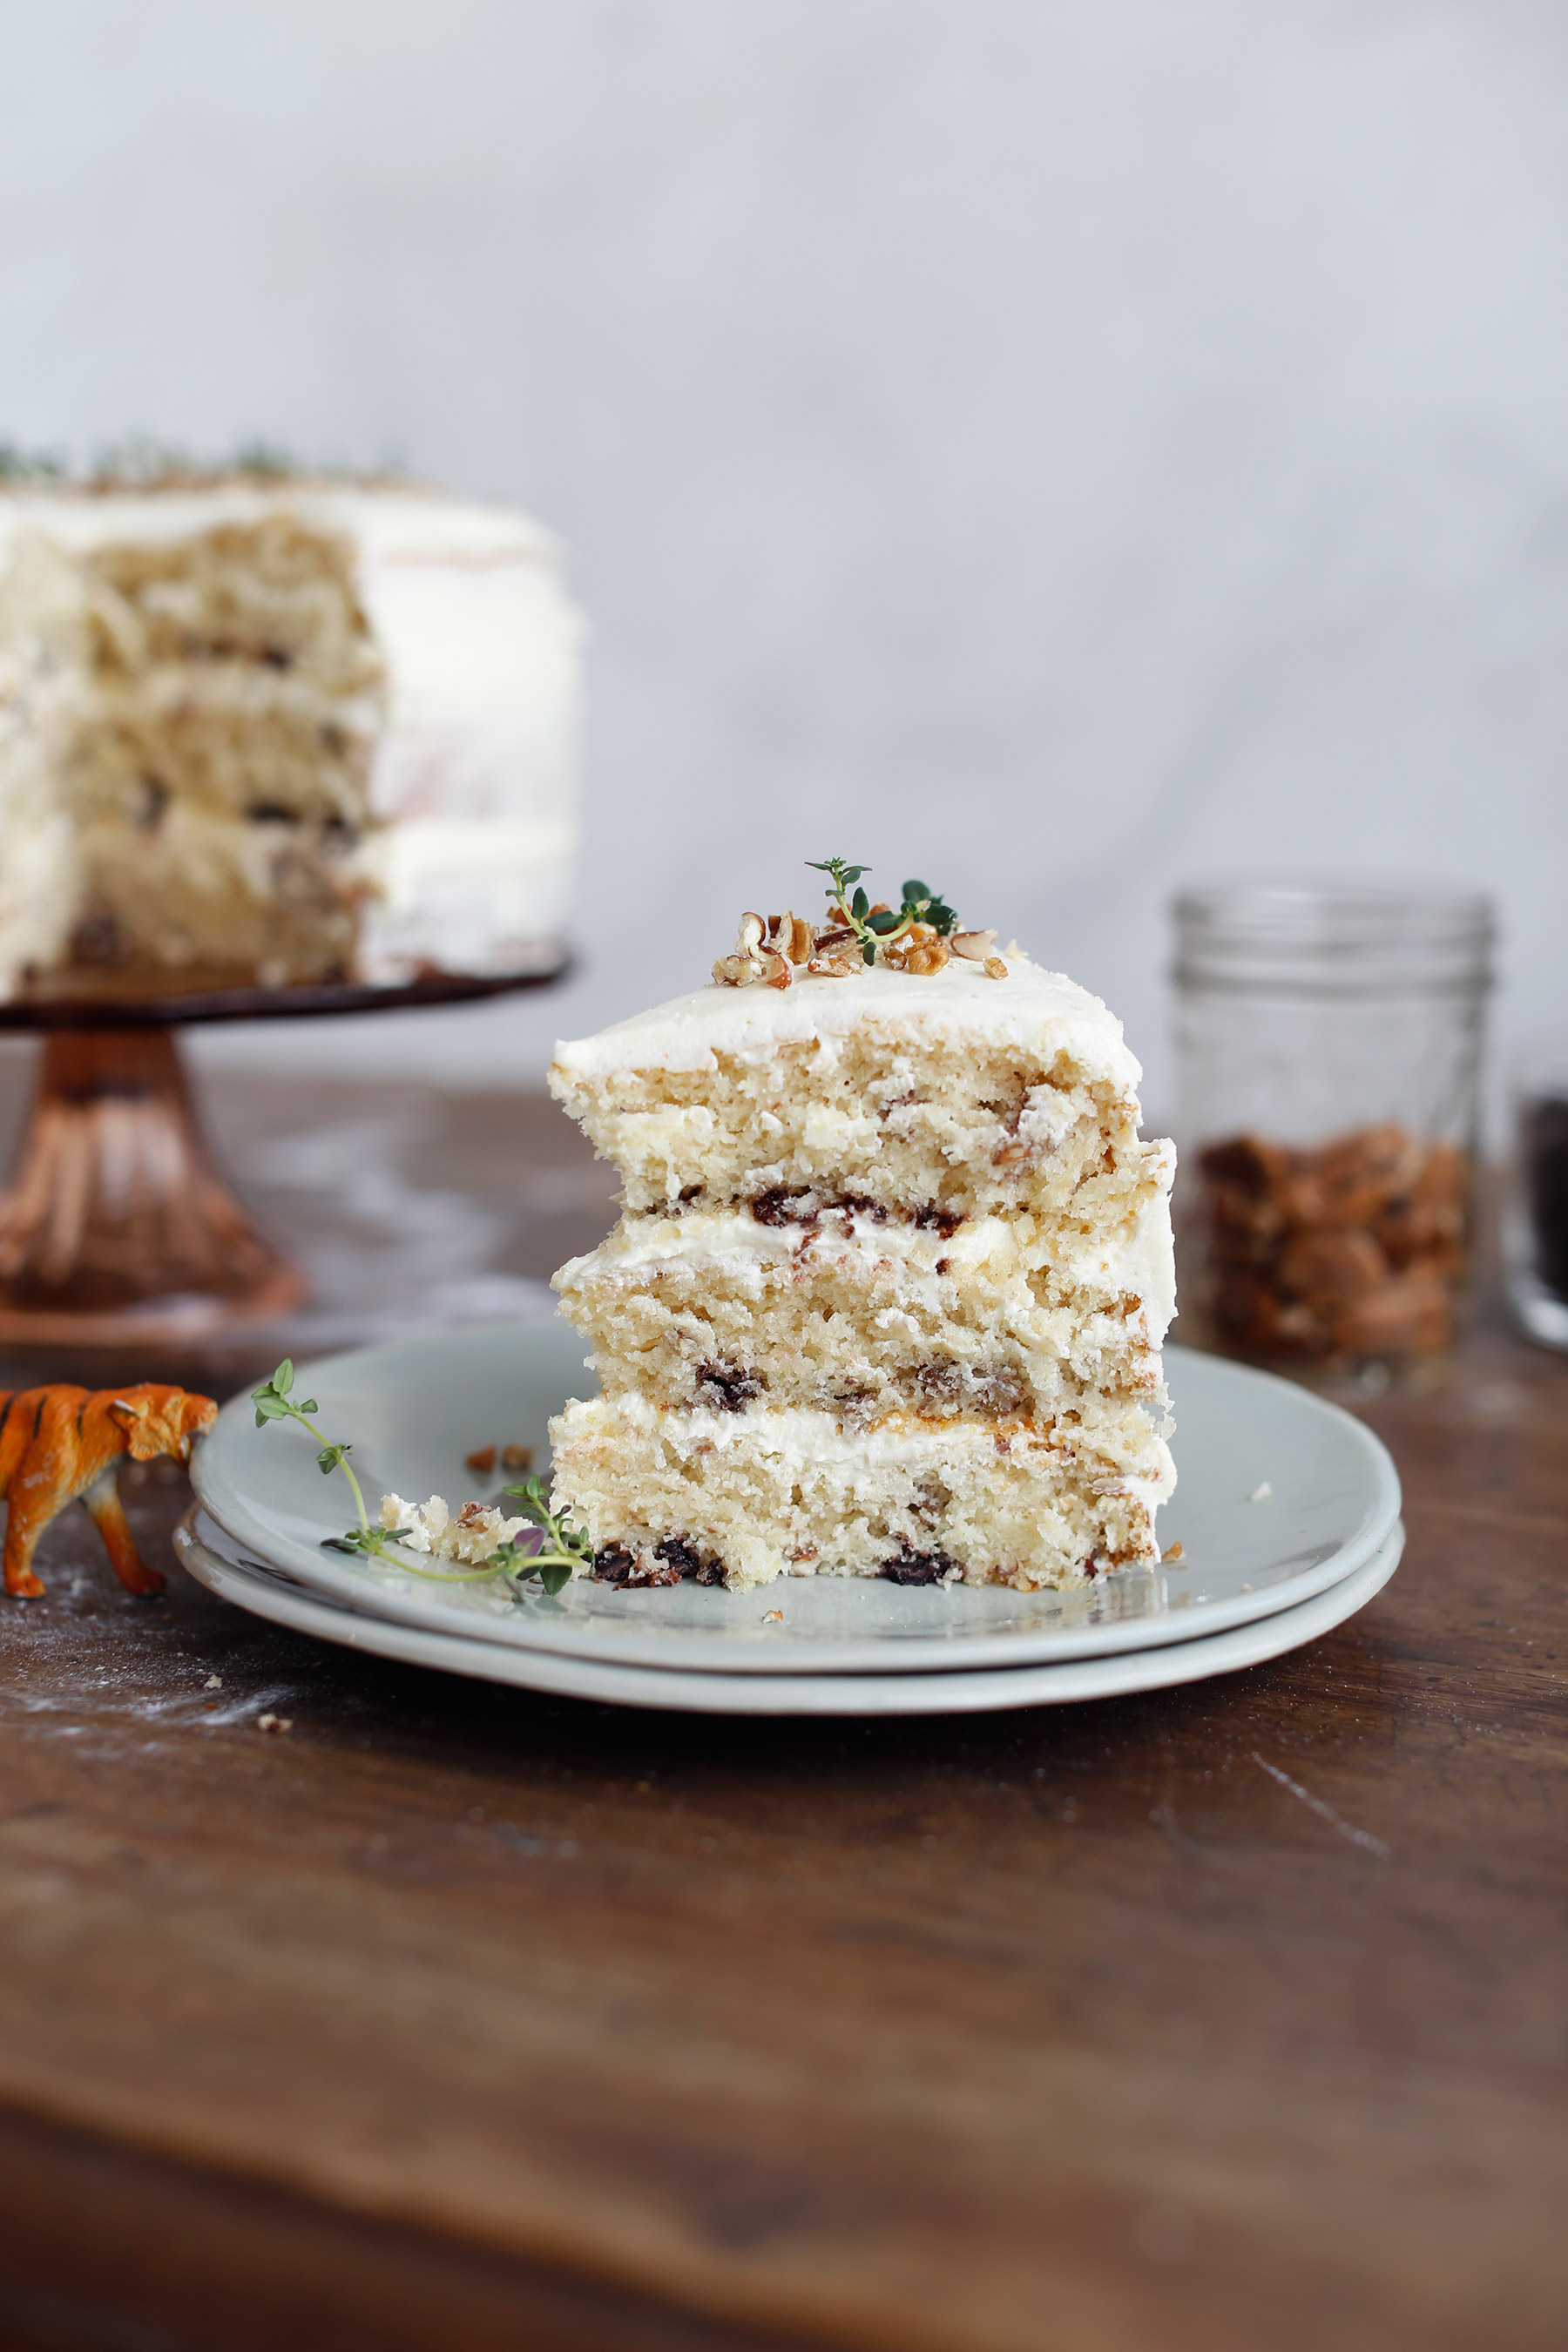 Pecan-Nut,-Chocolate-and-Maple-Syrup-Layer-Cake-11